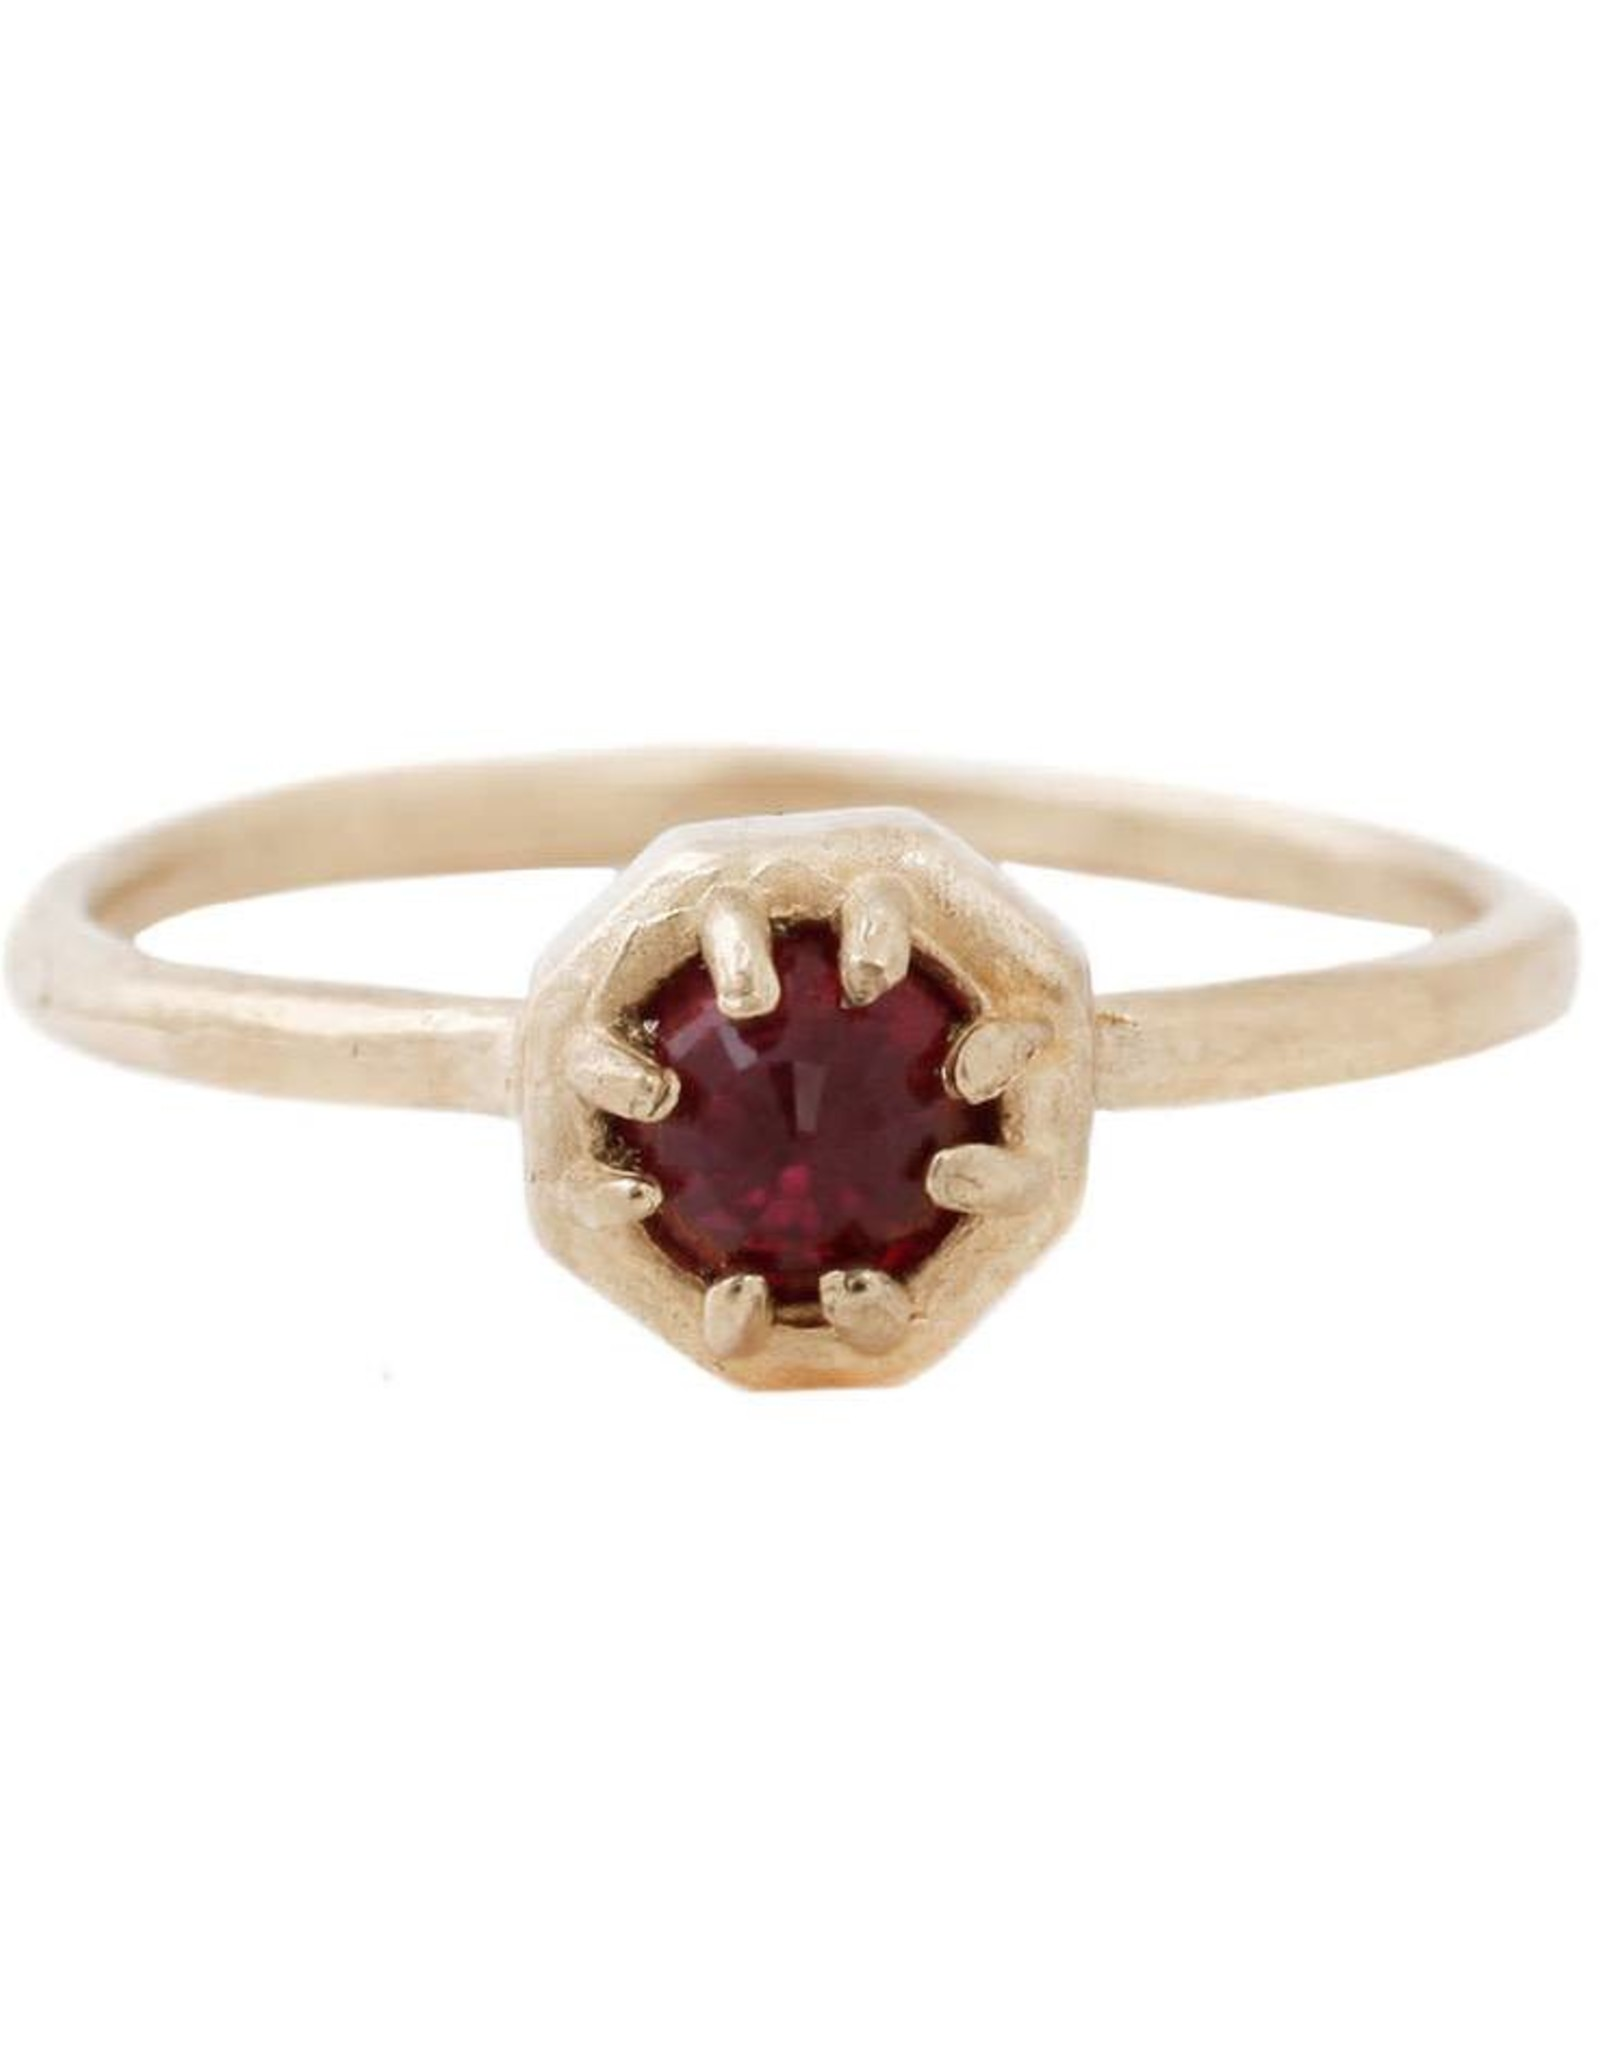 Lauren Wolf Jewelry Tiny Gold Octagon Ring - Ruby